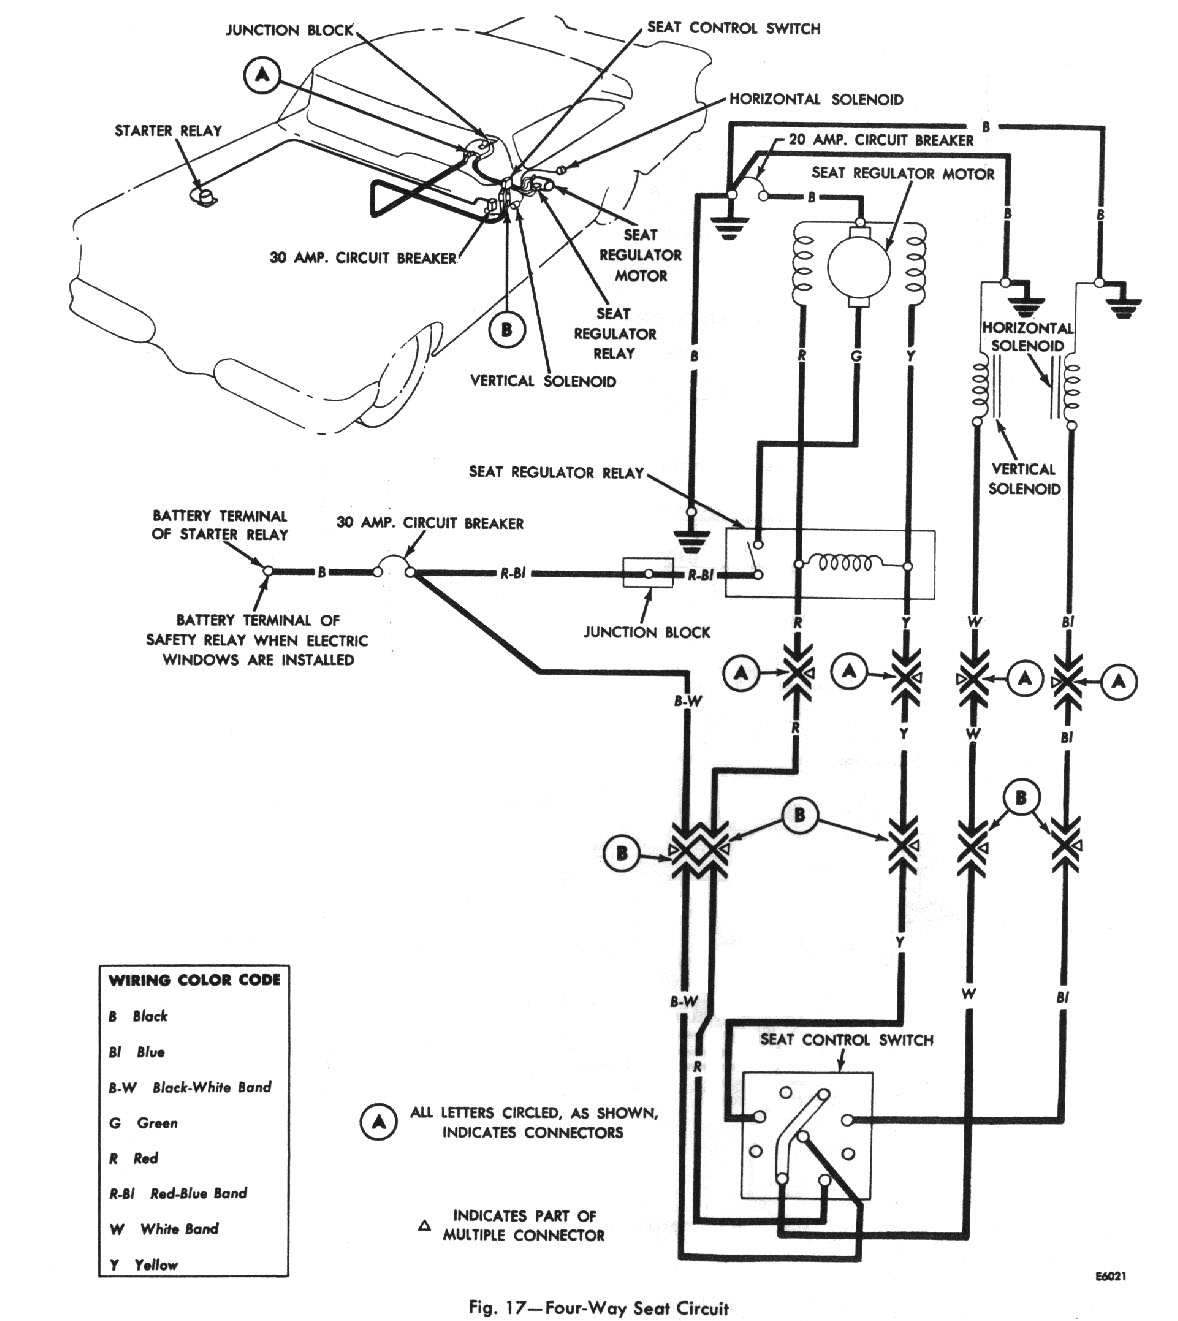 thunderbird wiring diagram · the service beacon